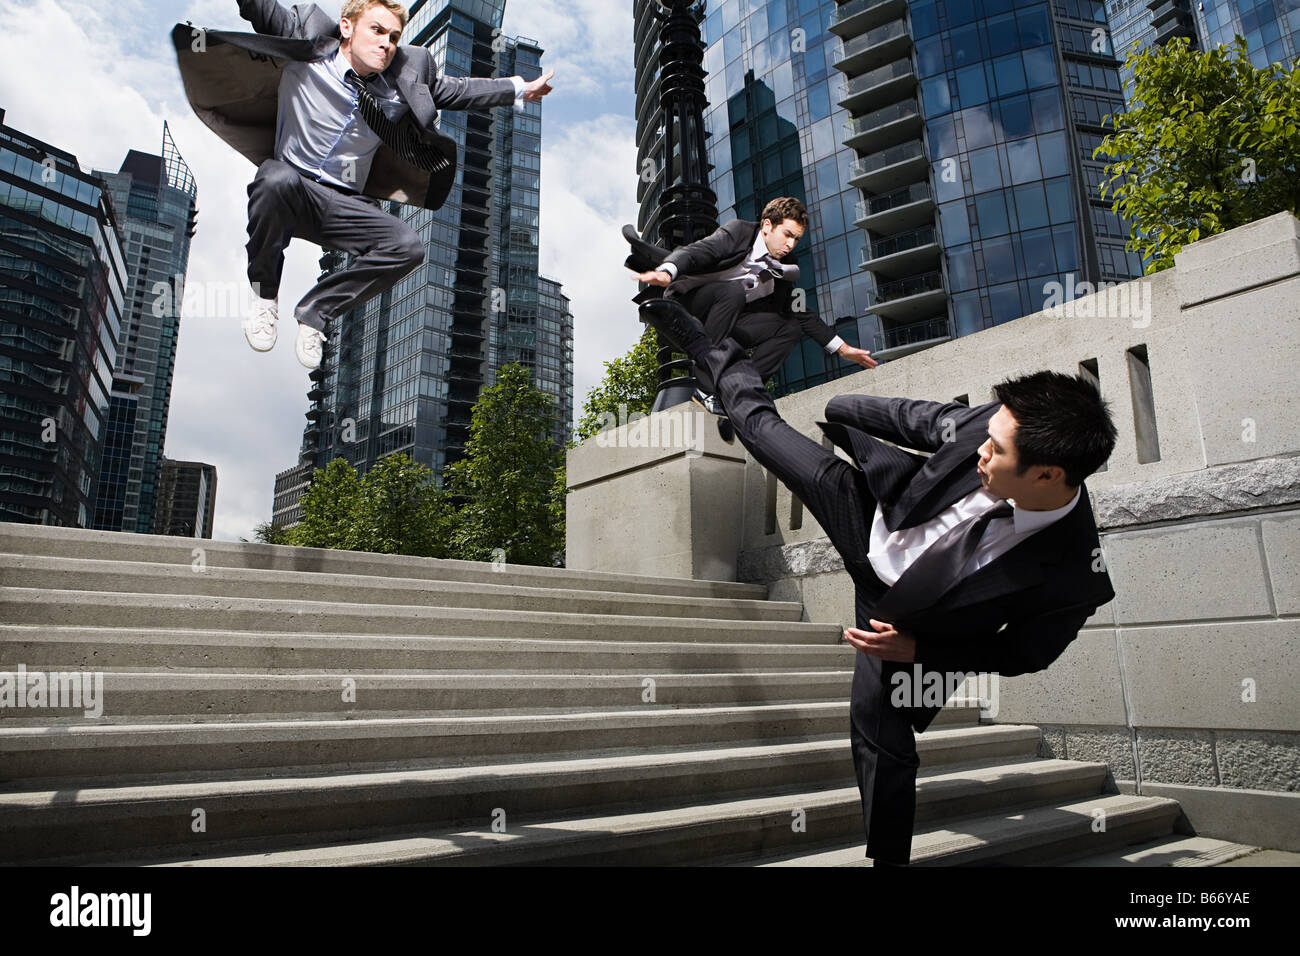 Businessmen fighting - Stock Image